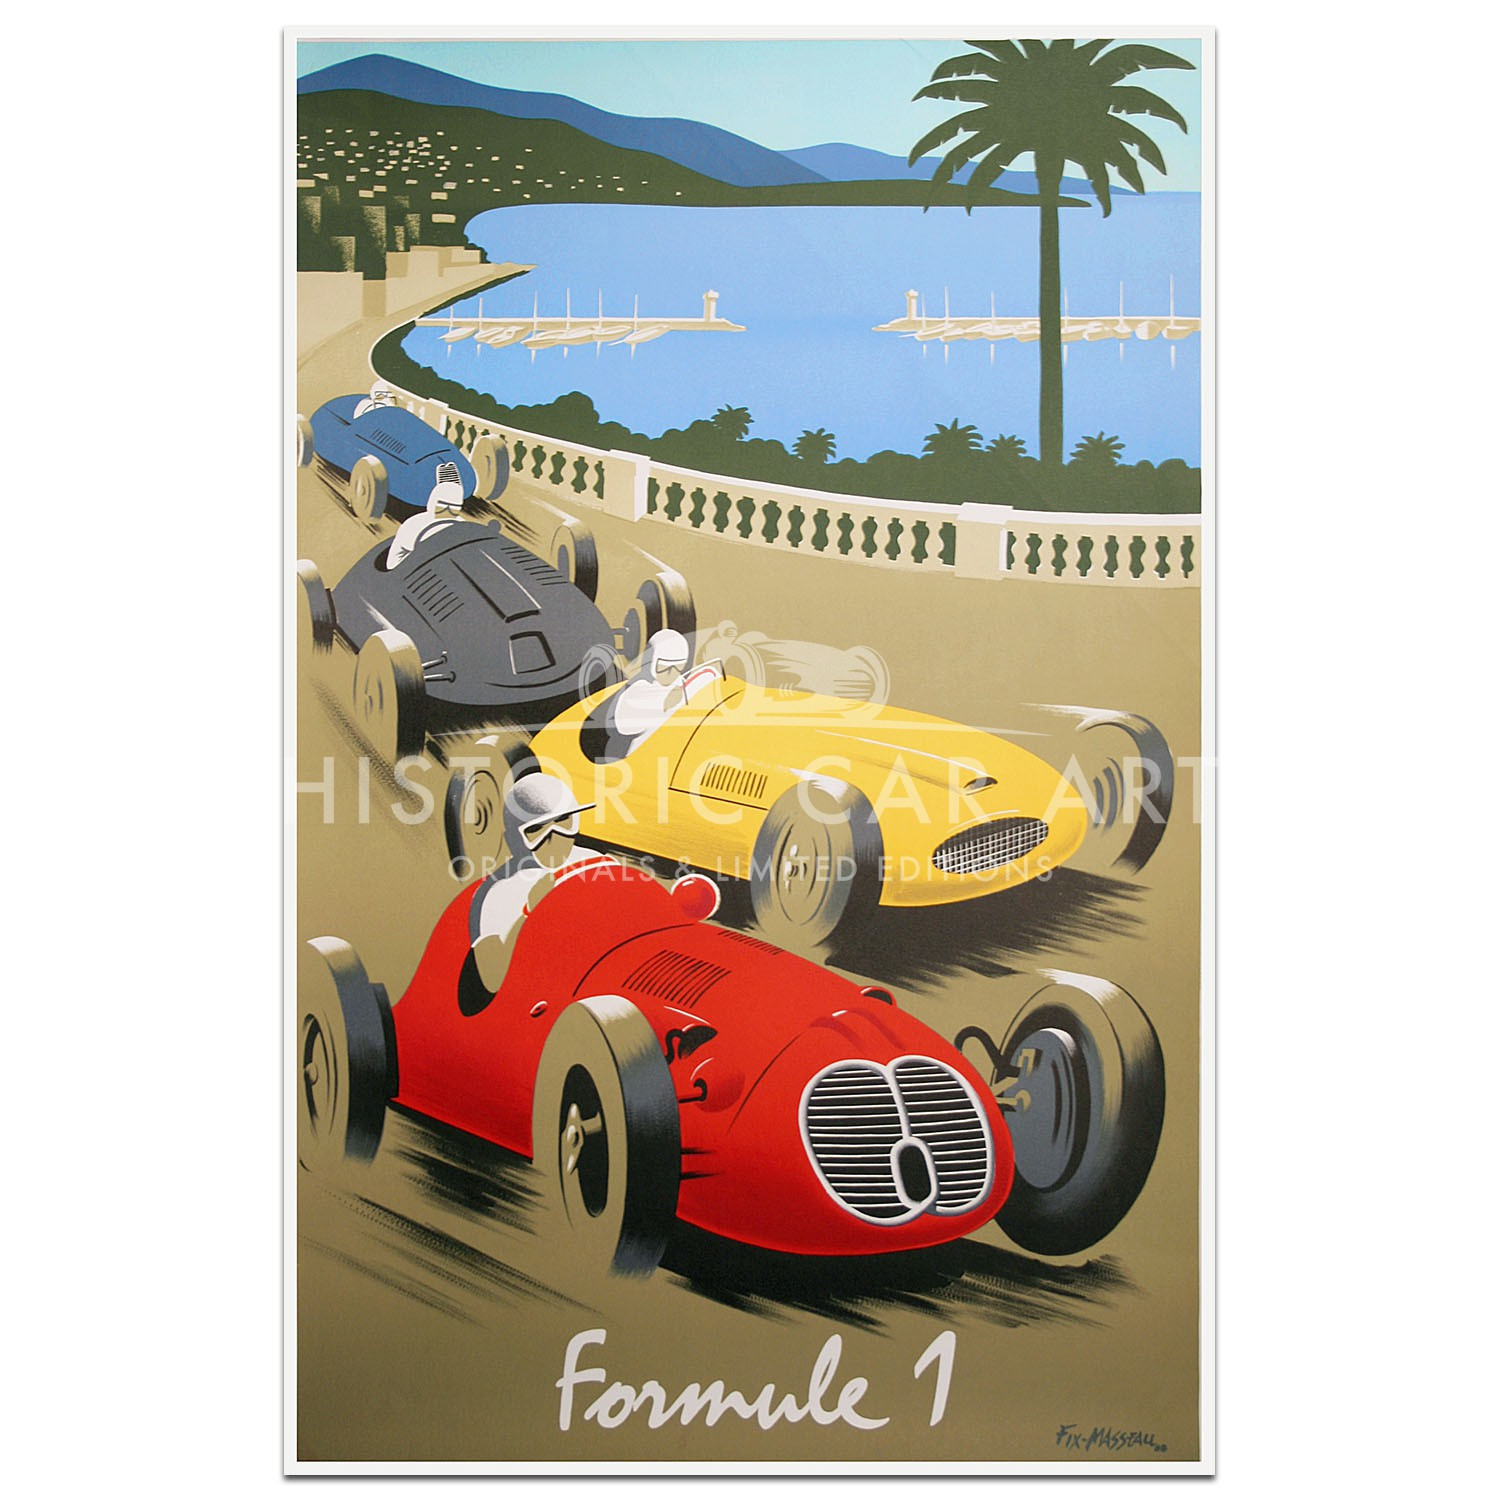 French | Fix Masseau Formule 1 Poster